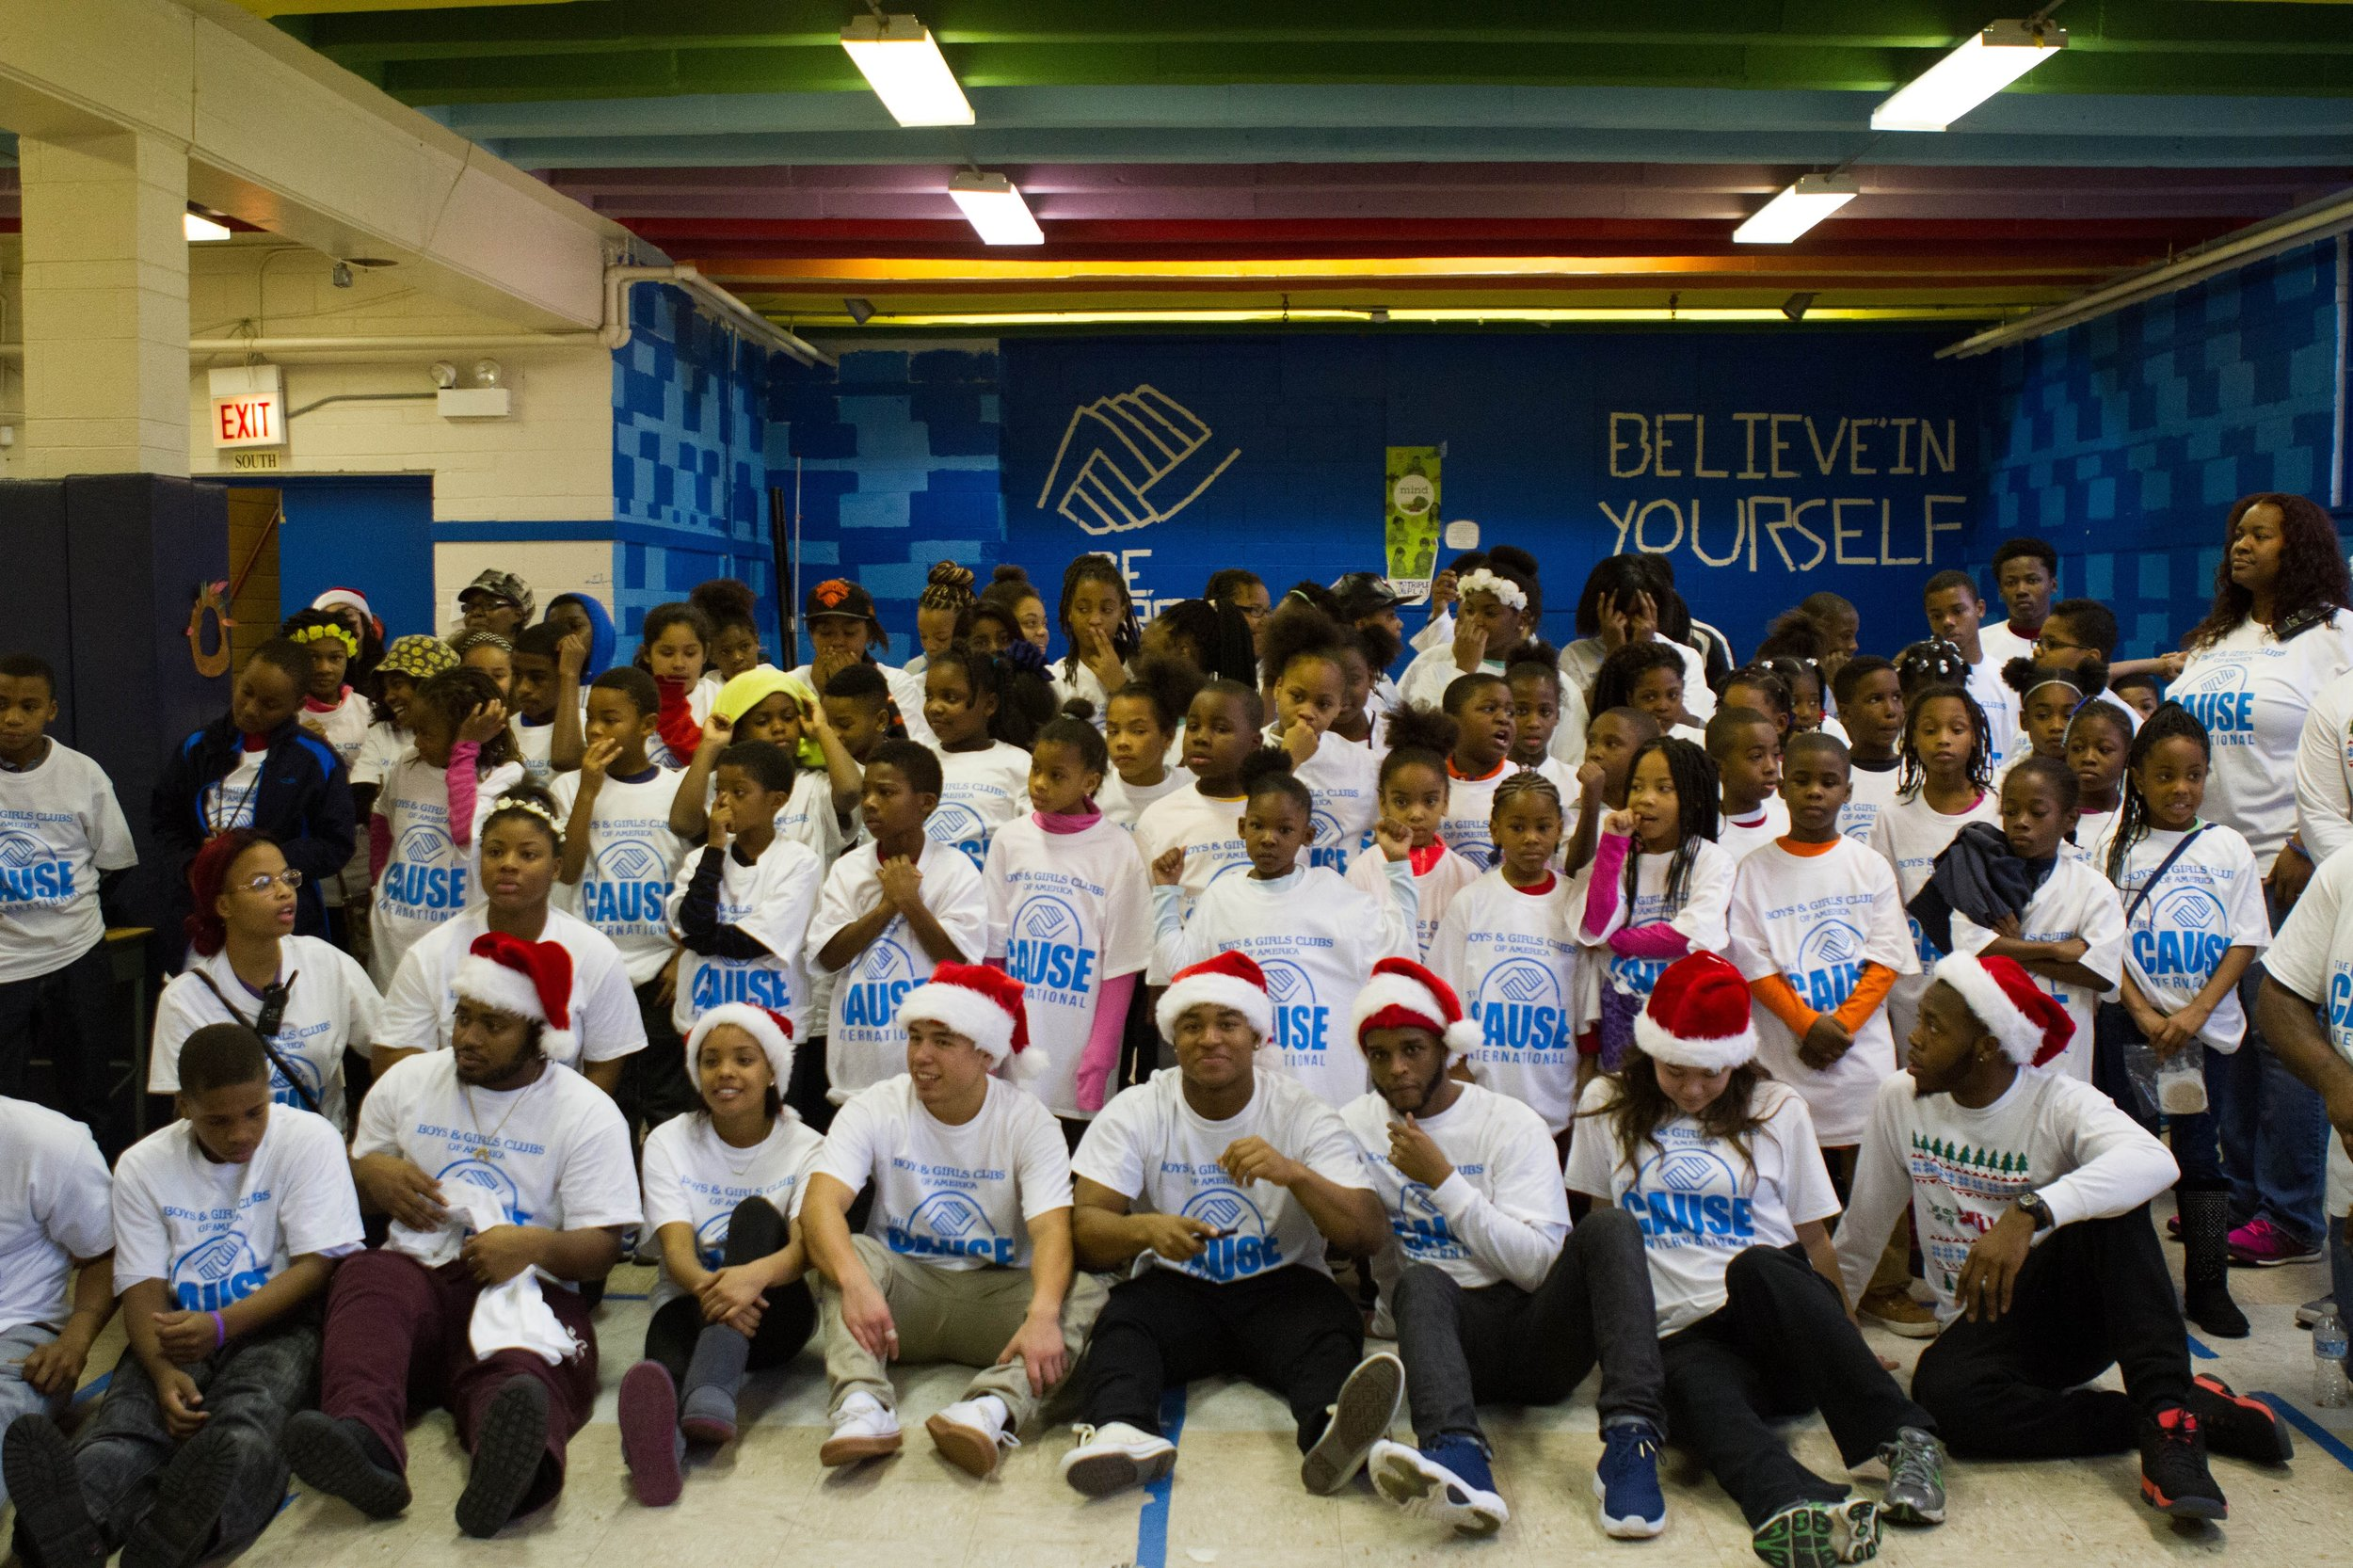 Boys & Girls Club - Chicago - Chicago was our very first giveback. During our universities Christmas break we donated $3,000 in sports equipment, toys & school supplies to the children of the Boys & Girls Club on the south side of Chicago supplying many of the kids with their First Christmas. Not only did we donate the $2,000 dollars in gifts, but shared the experience of a regular day at the Boy's & Girls Club. This included: arts & craft, dance class, gym time, lunch, and school work help.